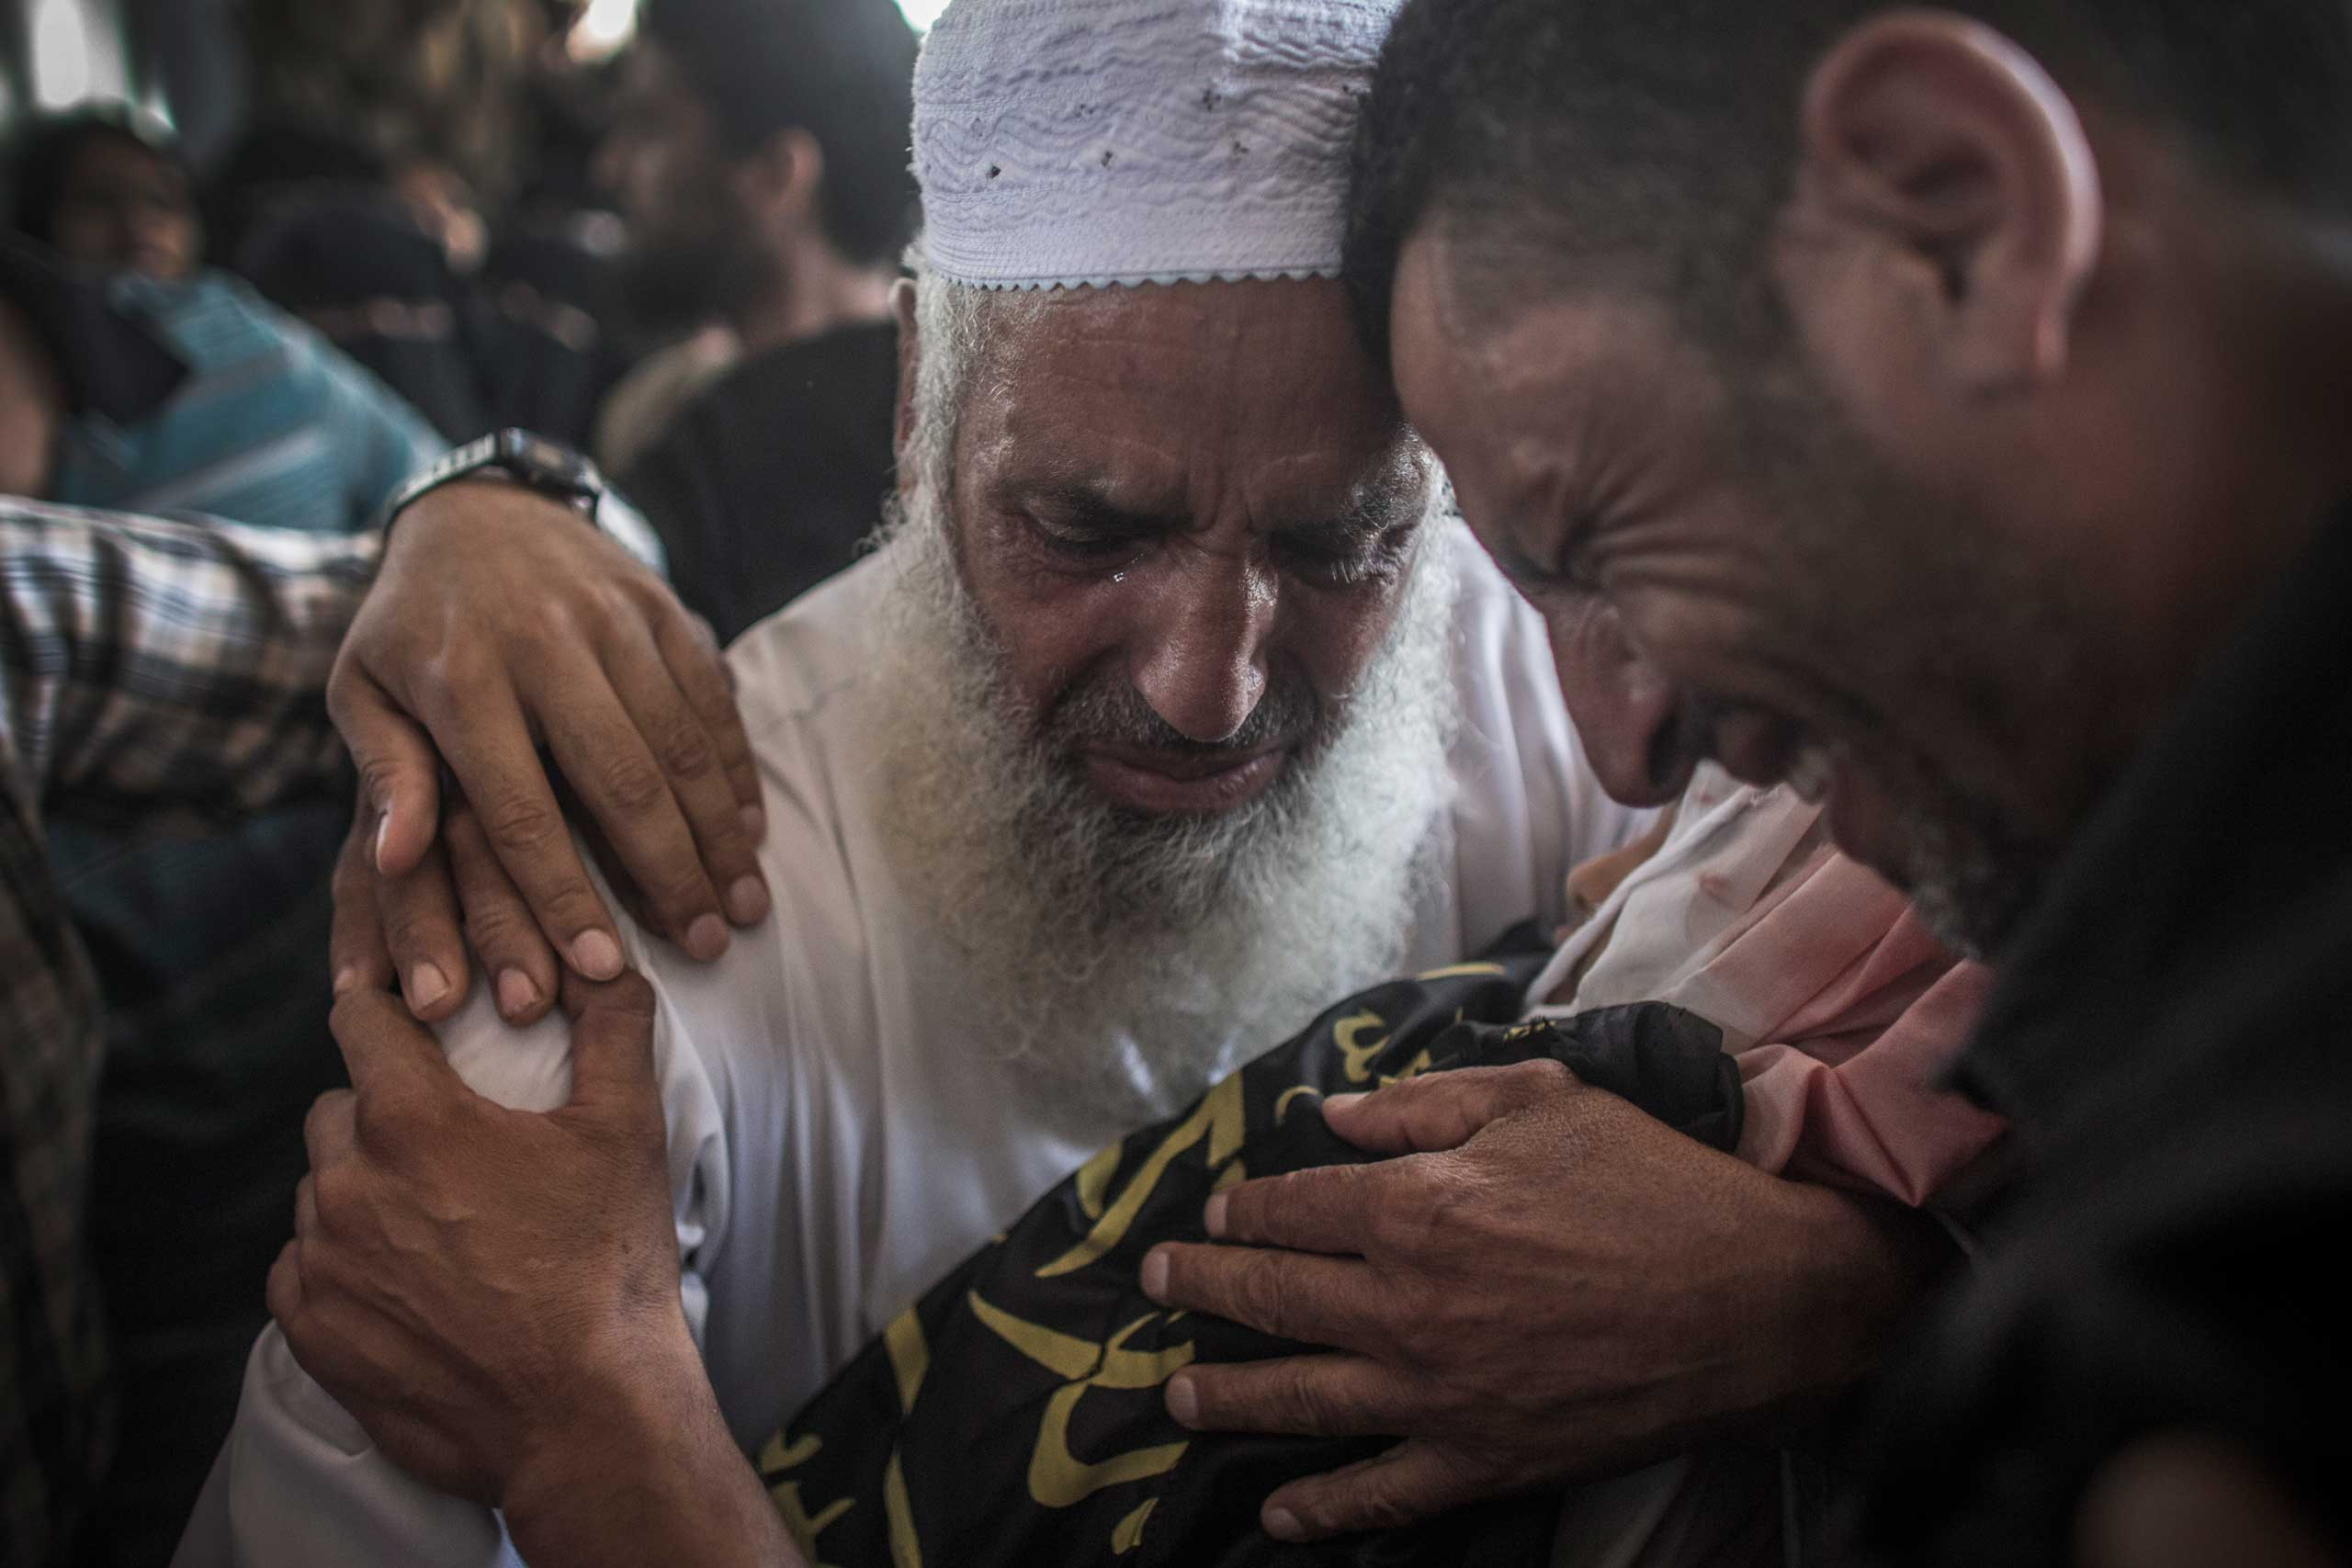 Relatives cry as they hold the body of Sara, 4, during her funeral outside Rafah, southern Gaza Strip, July 15, 2014.